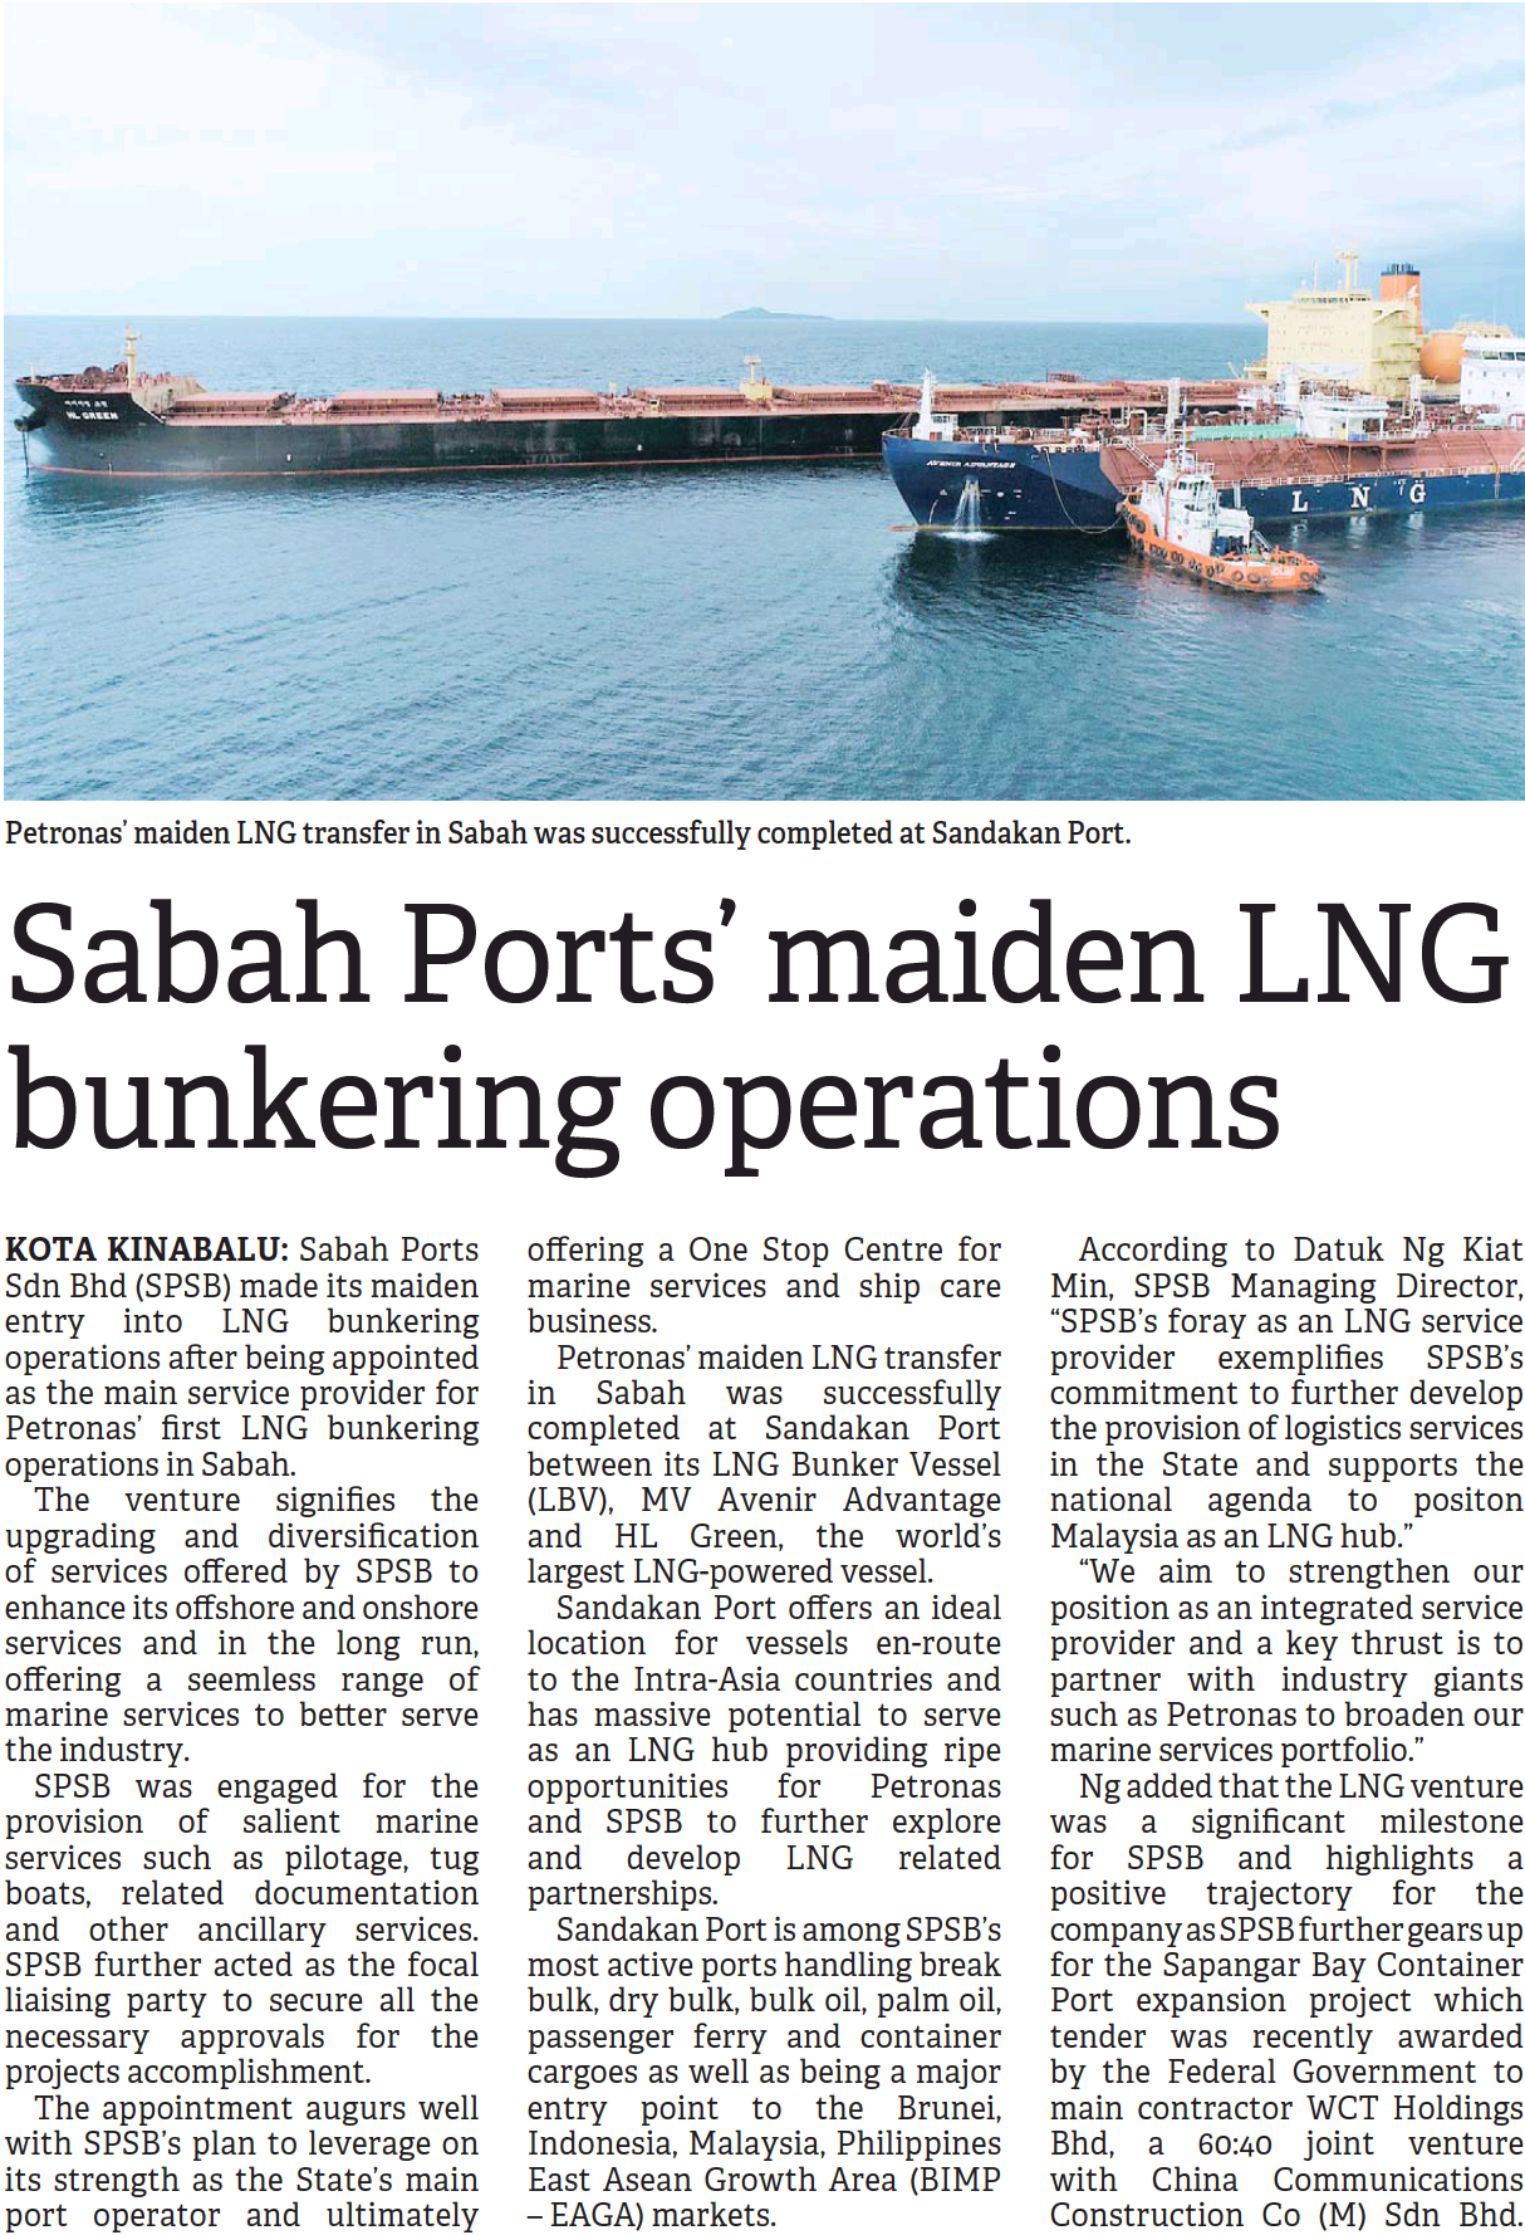 Sabah Ports' Maiden LNG Bunkering Operations